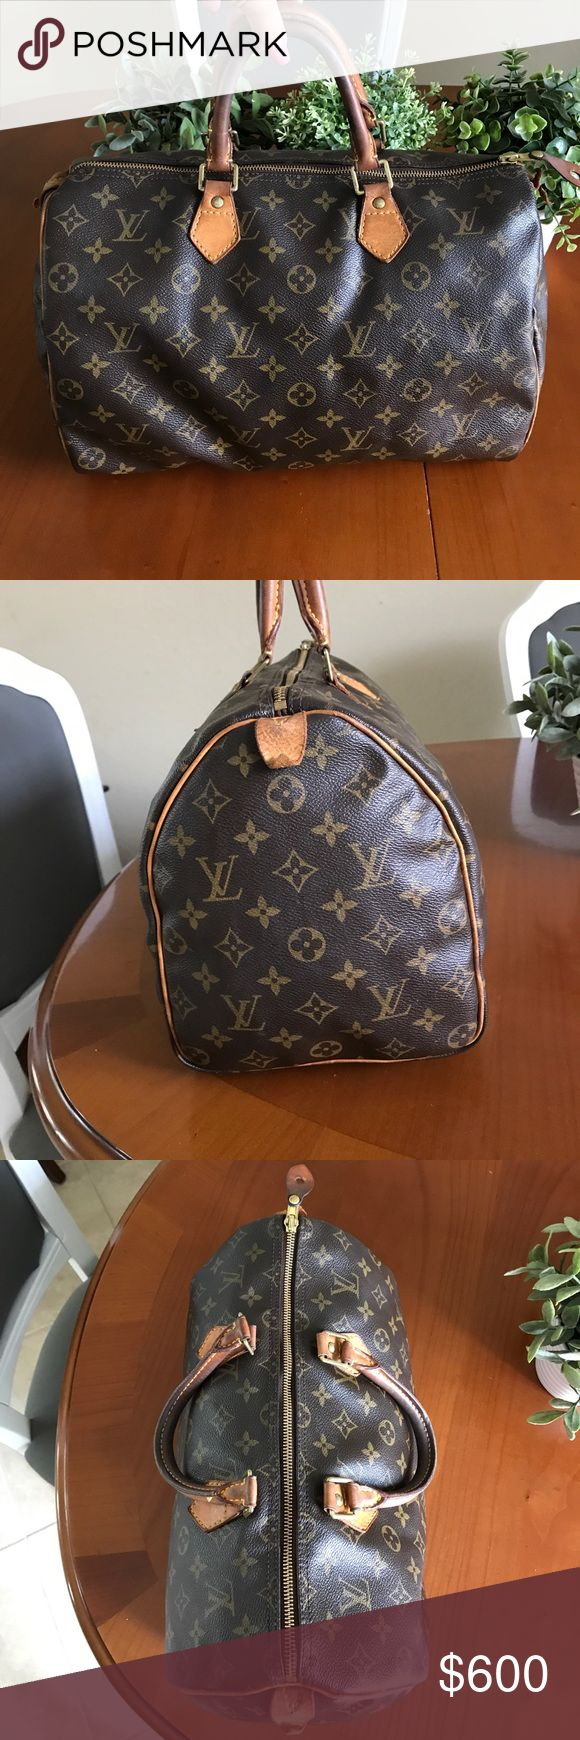 Louis Vuitton speedy 35 AUTHENTIC Louis Vuitton speedy 35. In good condition. Lock leather ripped as shown in pictures. No trades. Louis Vuitton Bags